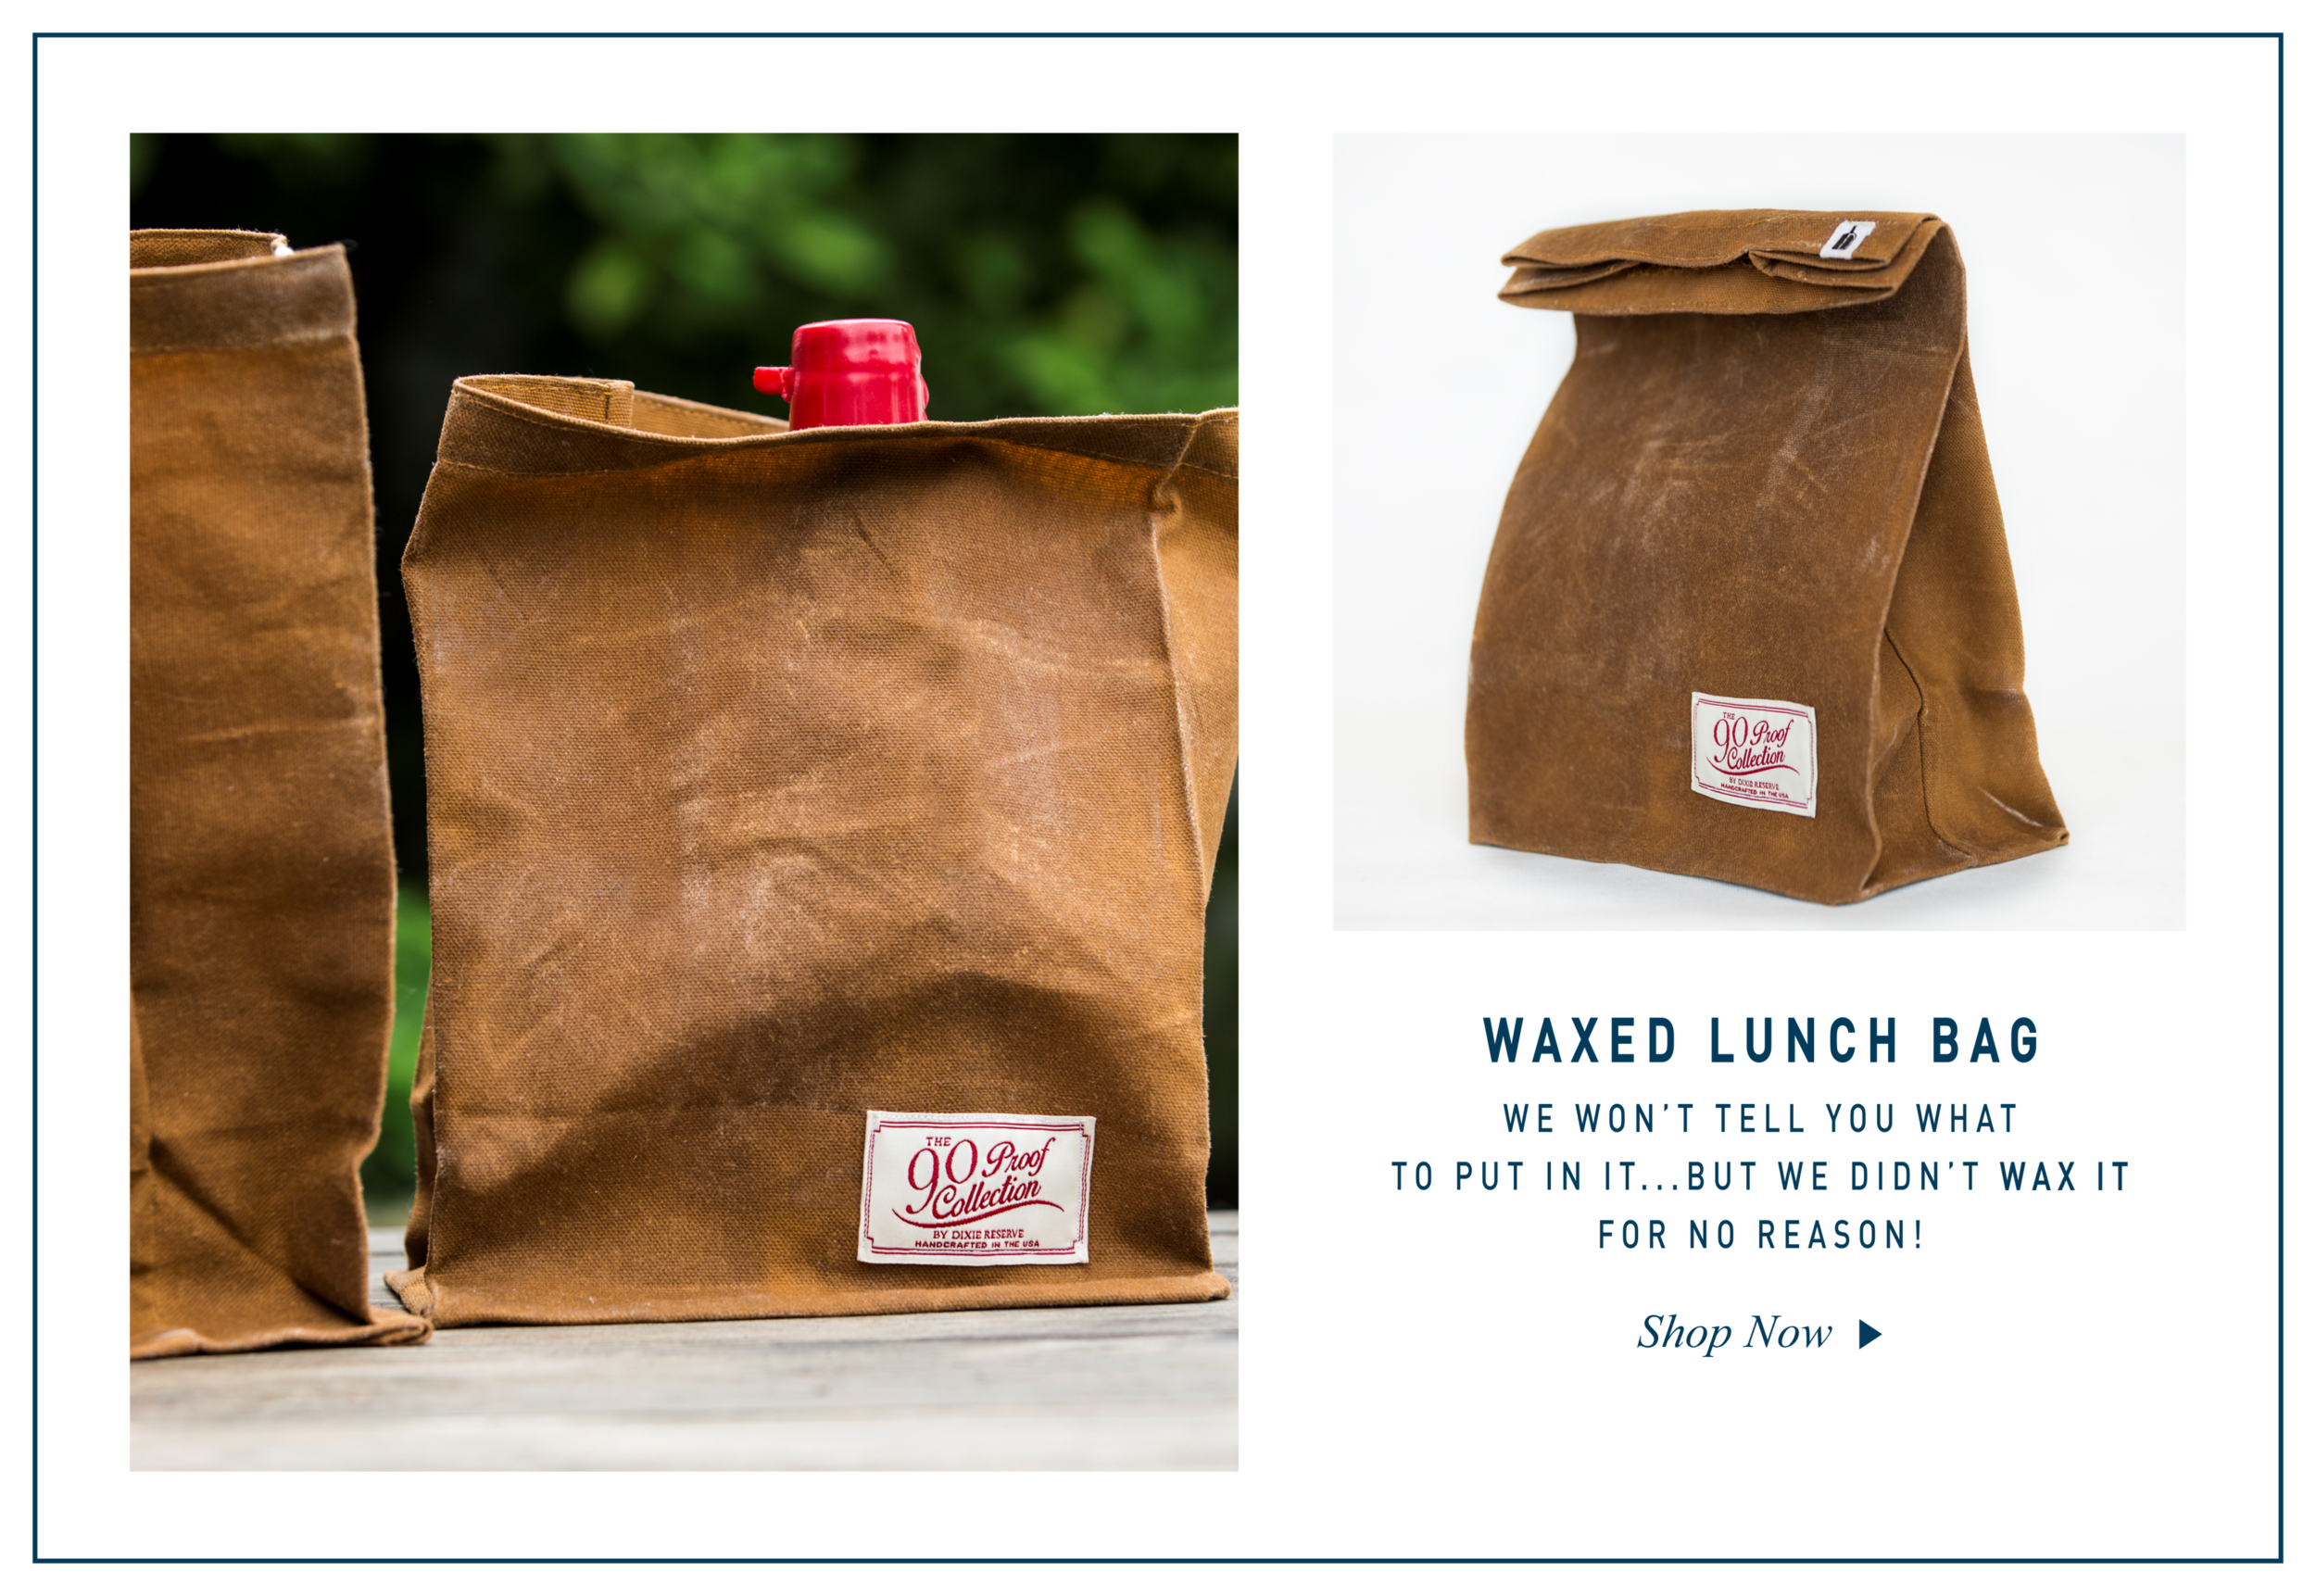 DIXIE RESERVE WAXED LUNCH BAGS